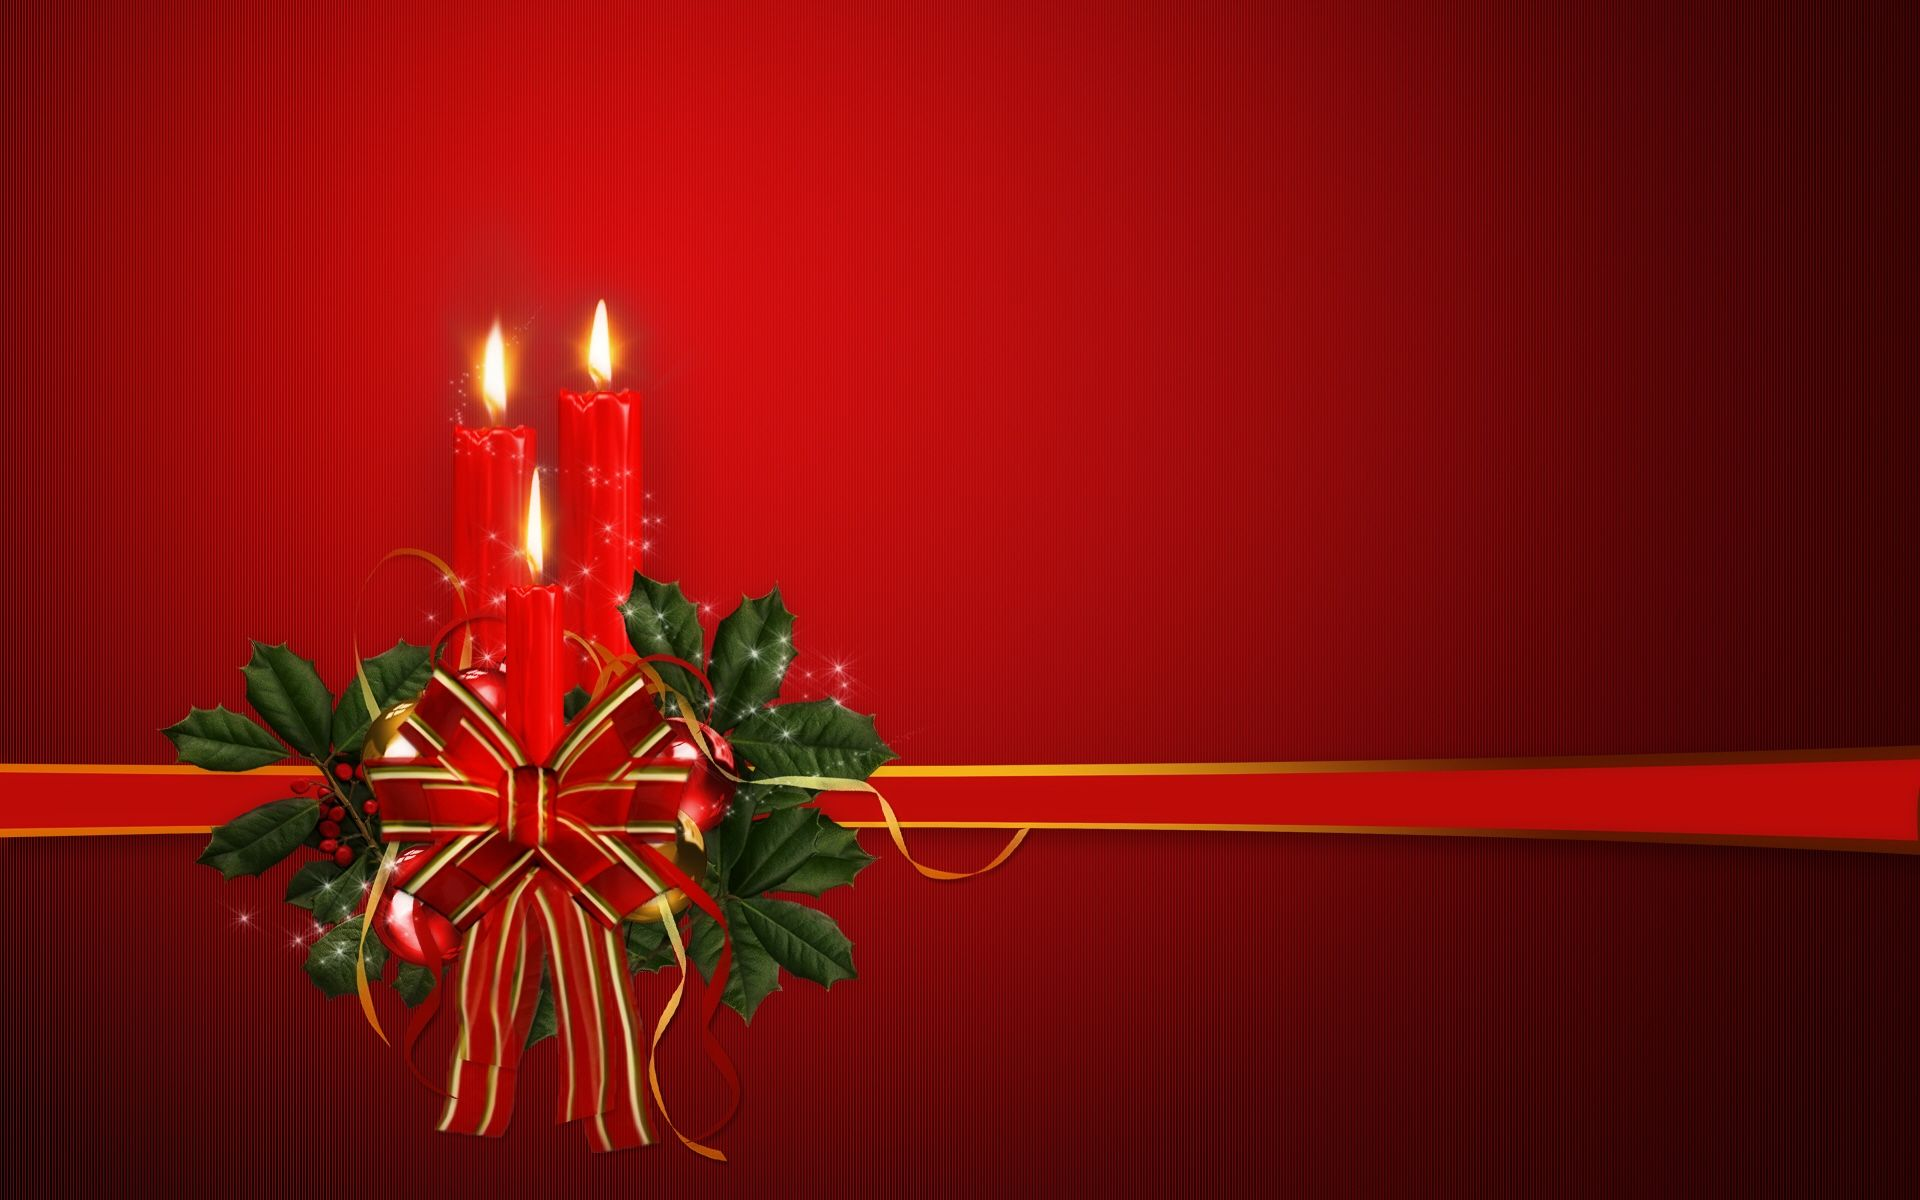 christmas background candles wallpaper wallpapers 1920x1200 1920x1200